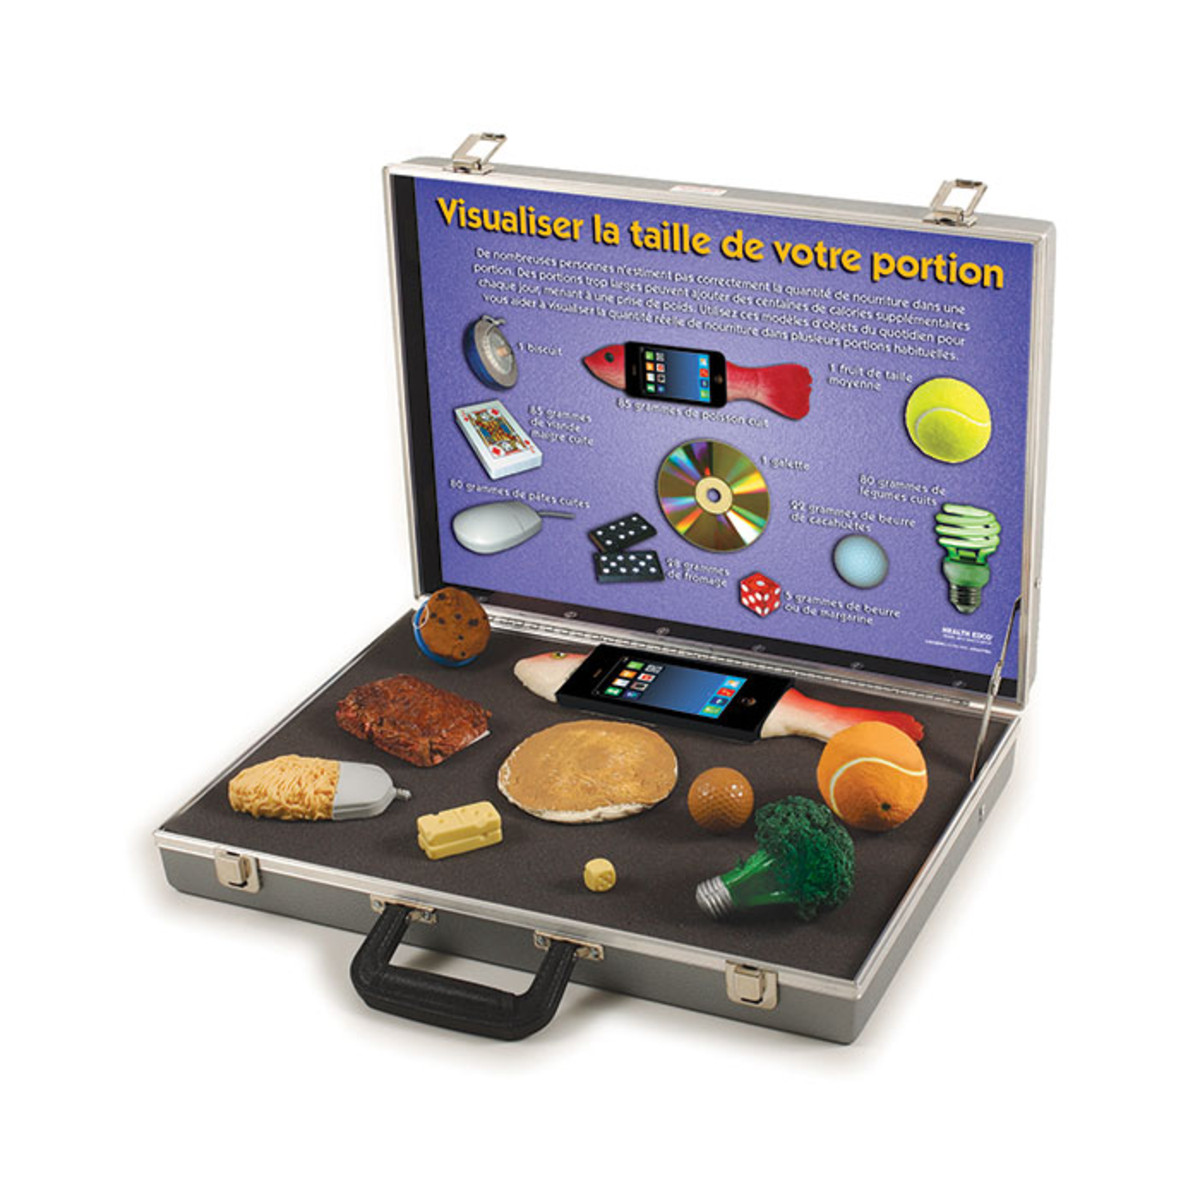 Health Edco; French; health education products; diabetes; weight gain; portion size